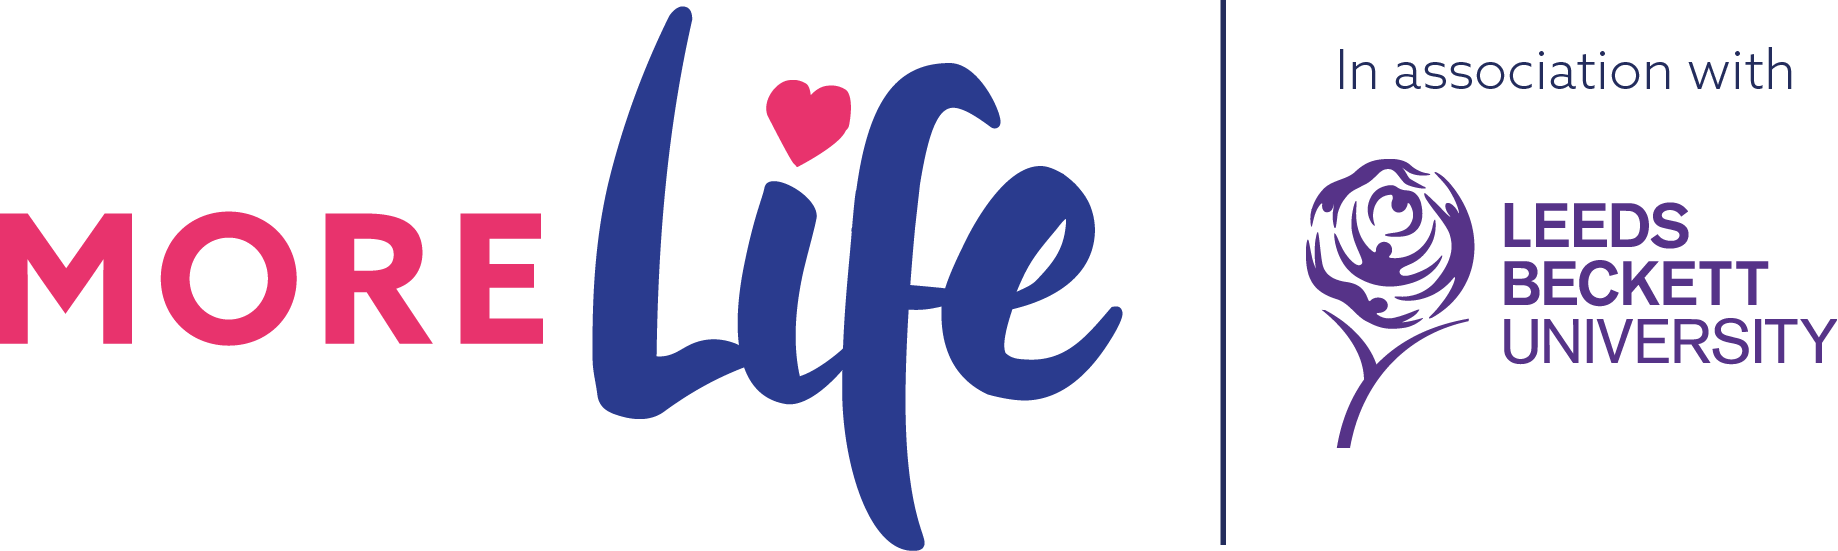 MoreLife in association with Leeds Beckett Logo